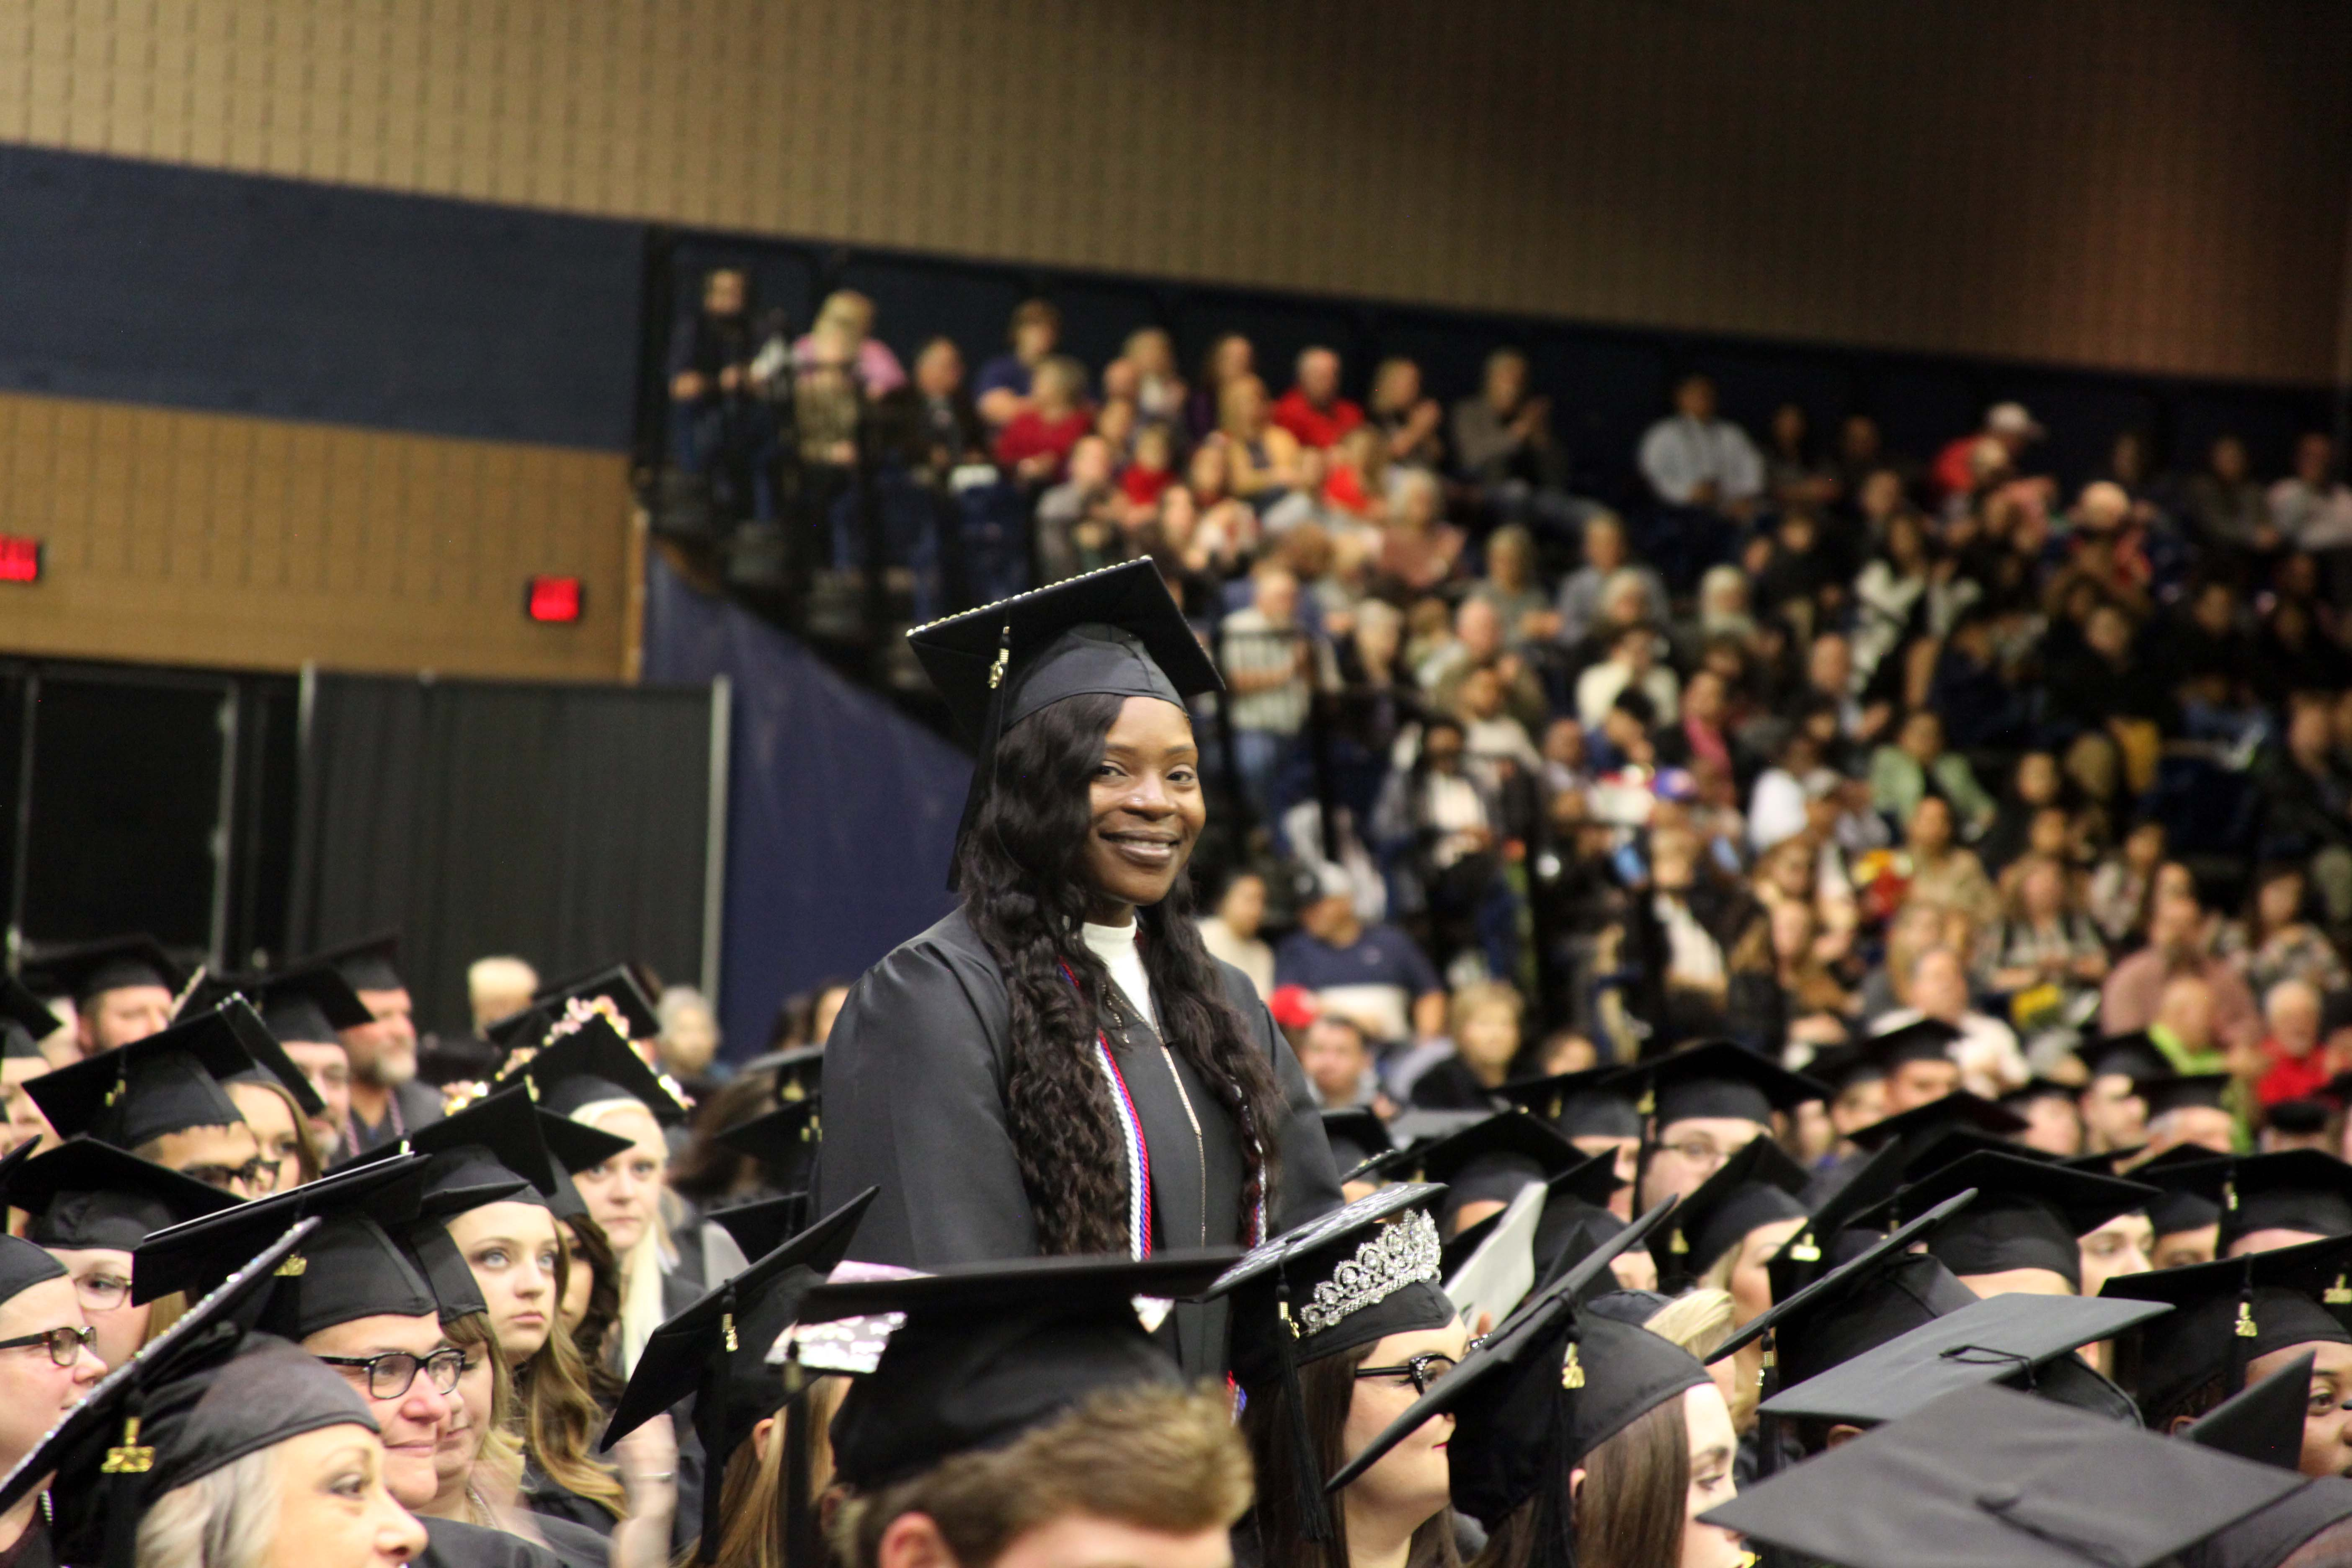 GNTC Student Government Association (SGA) President Jaweah Hamilton stands during the Fall 2019 Commencement Ceremony at the Dalton Convention Center. Hamilton was being recognized for her service in SGA and received an Associate of Applied Science Degree in Early Childhood Care and Education.